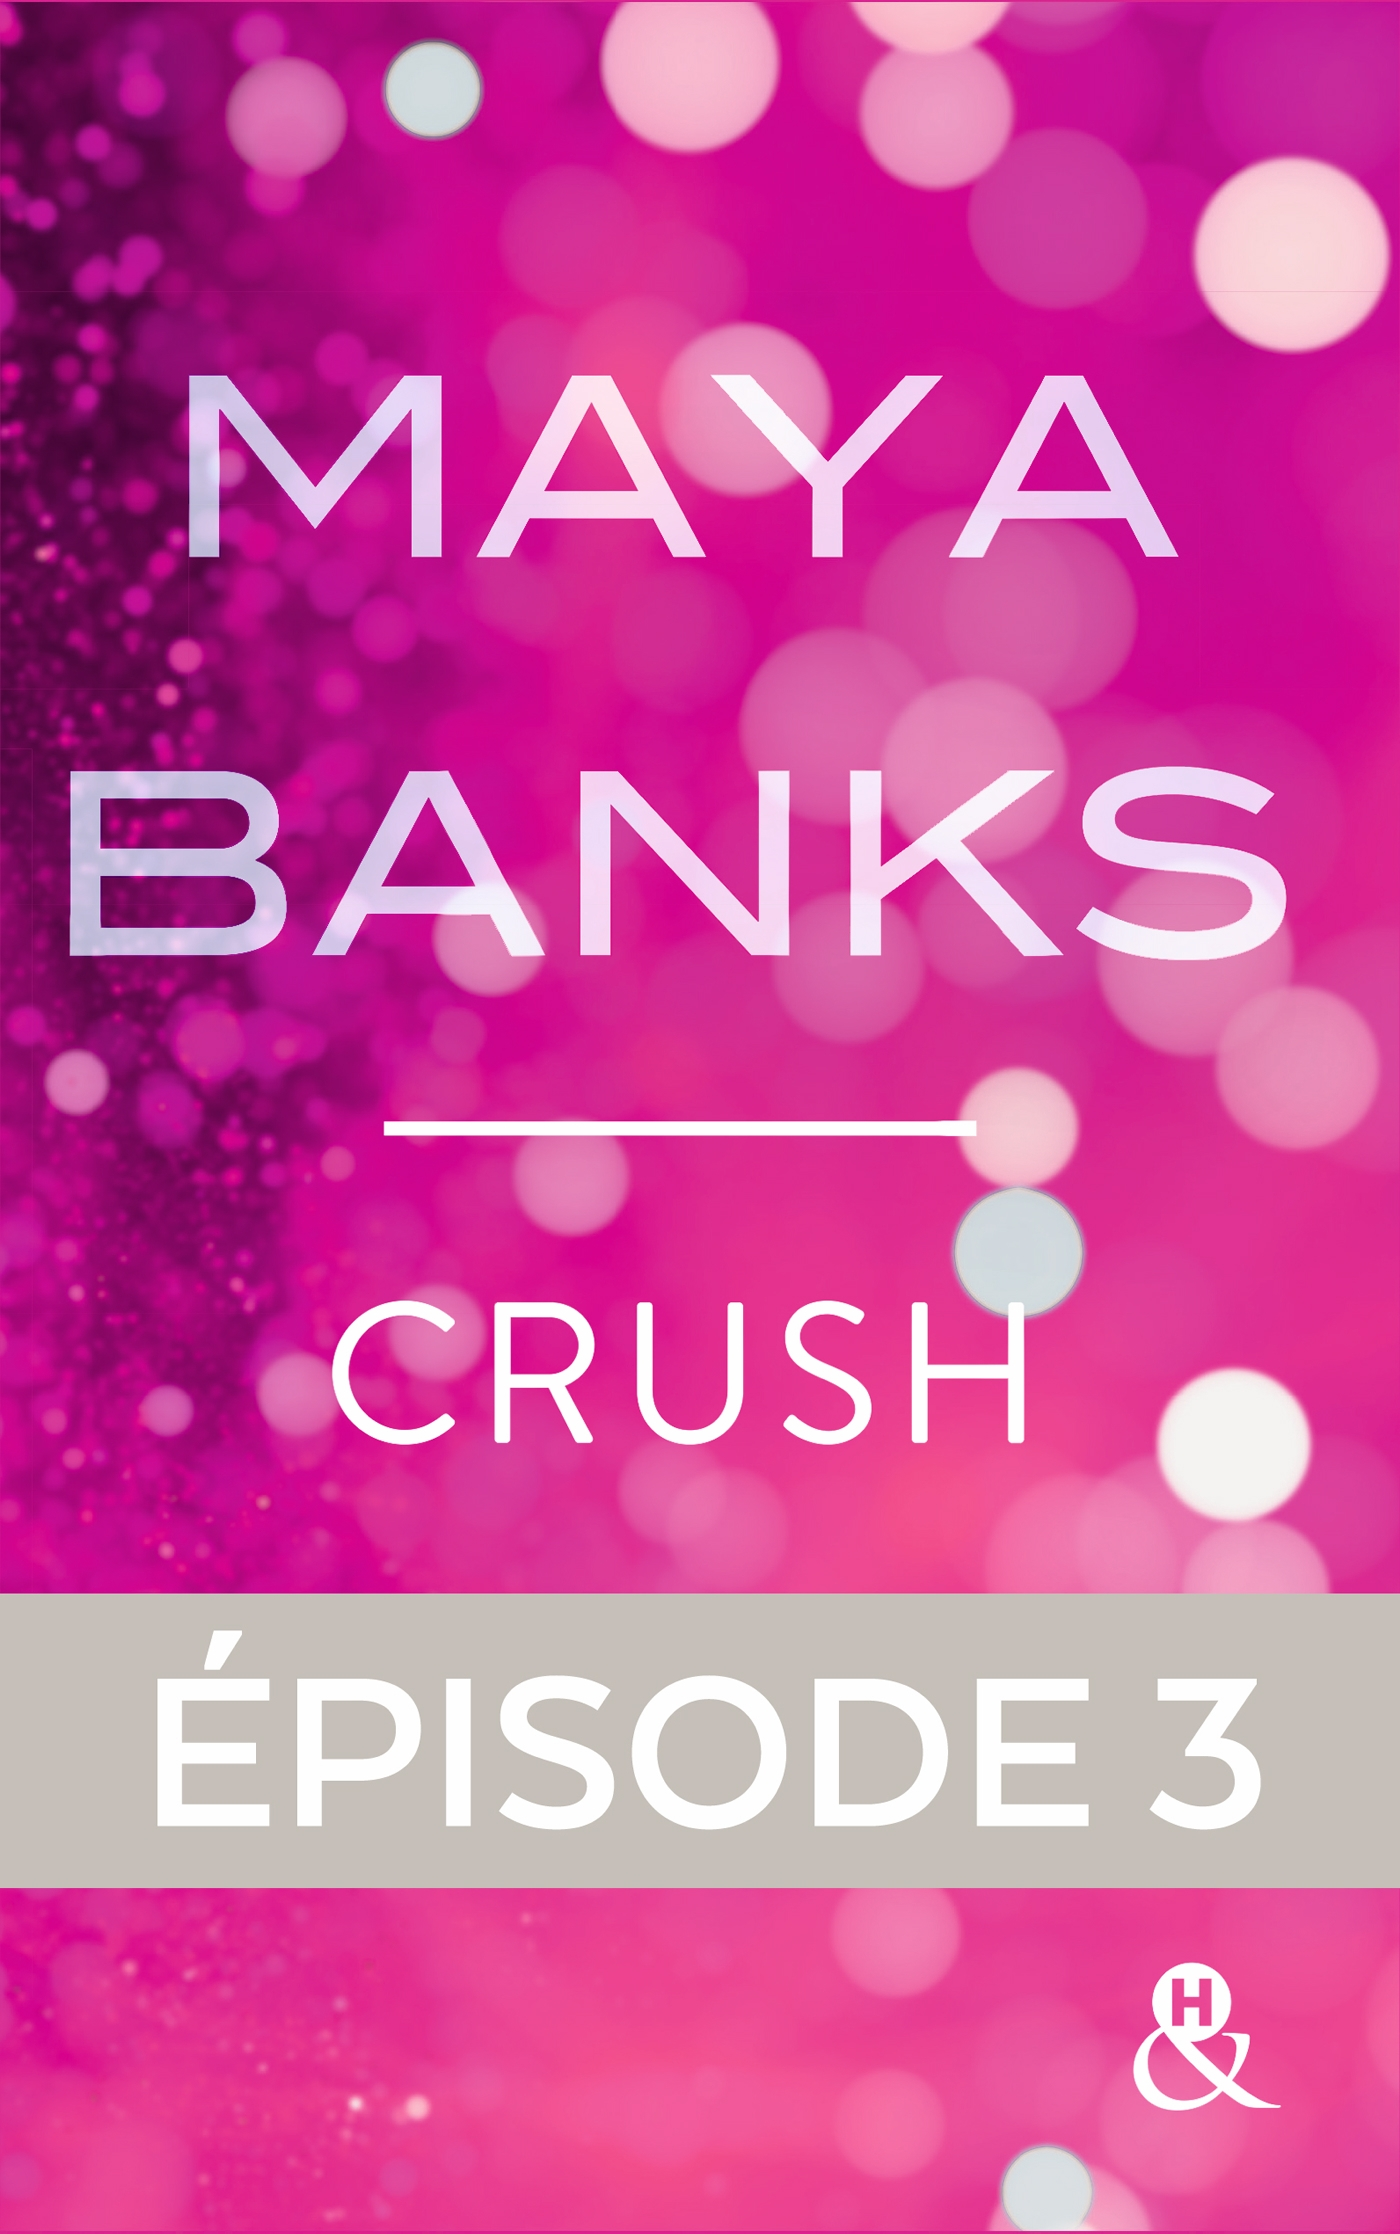 Crush - Episode 3